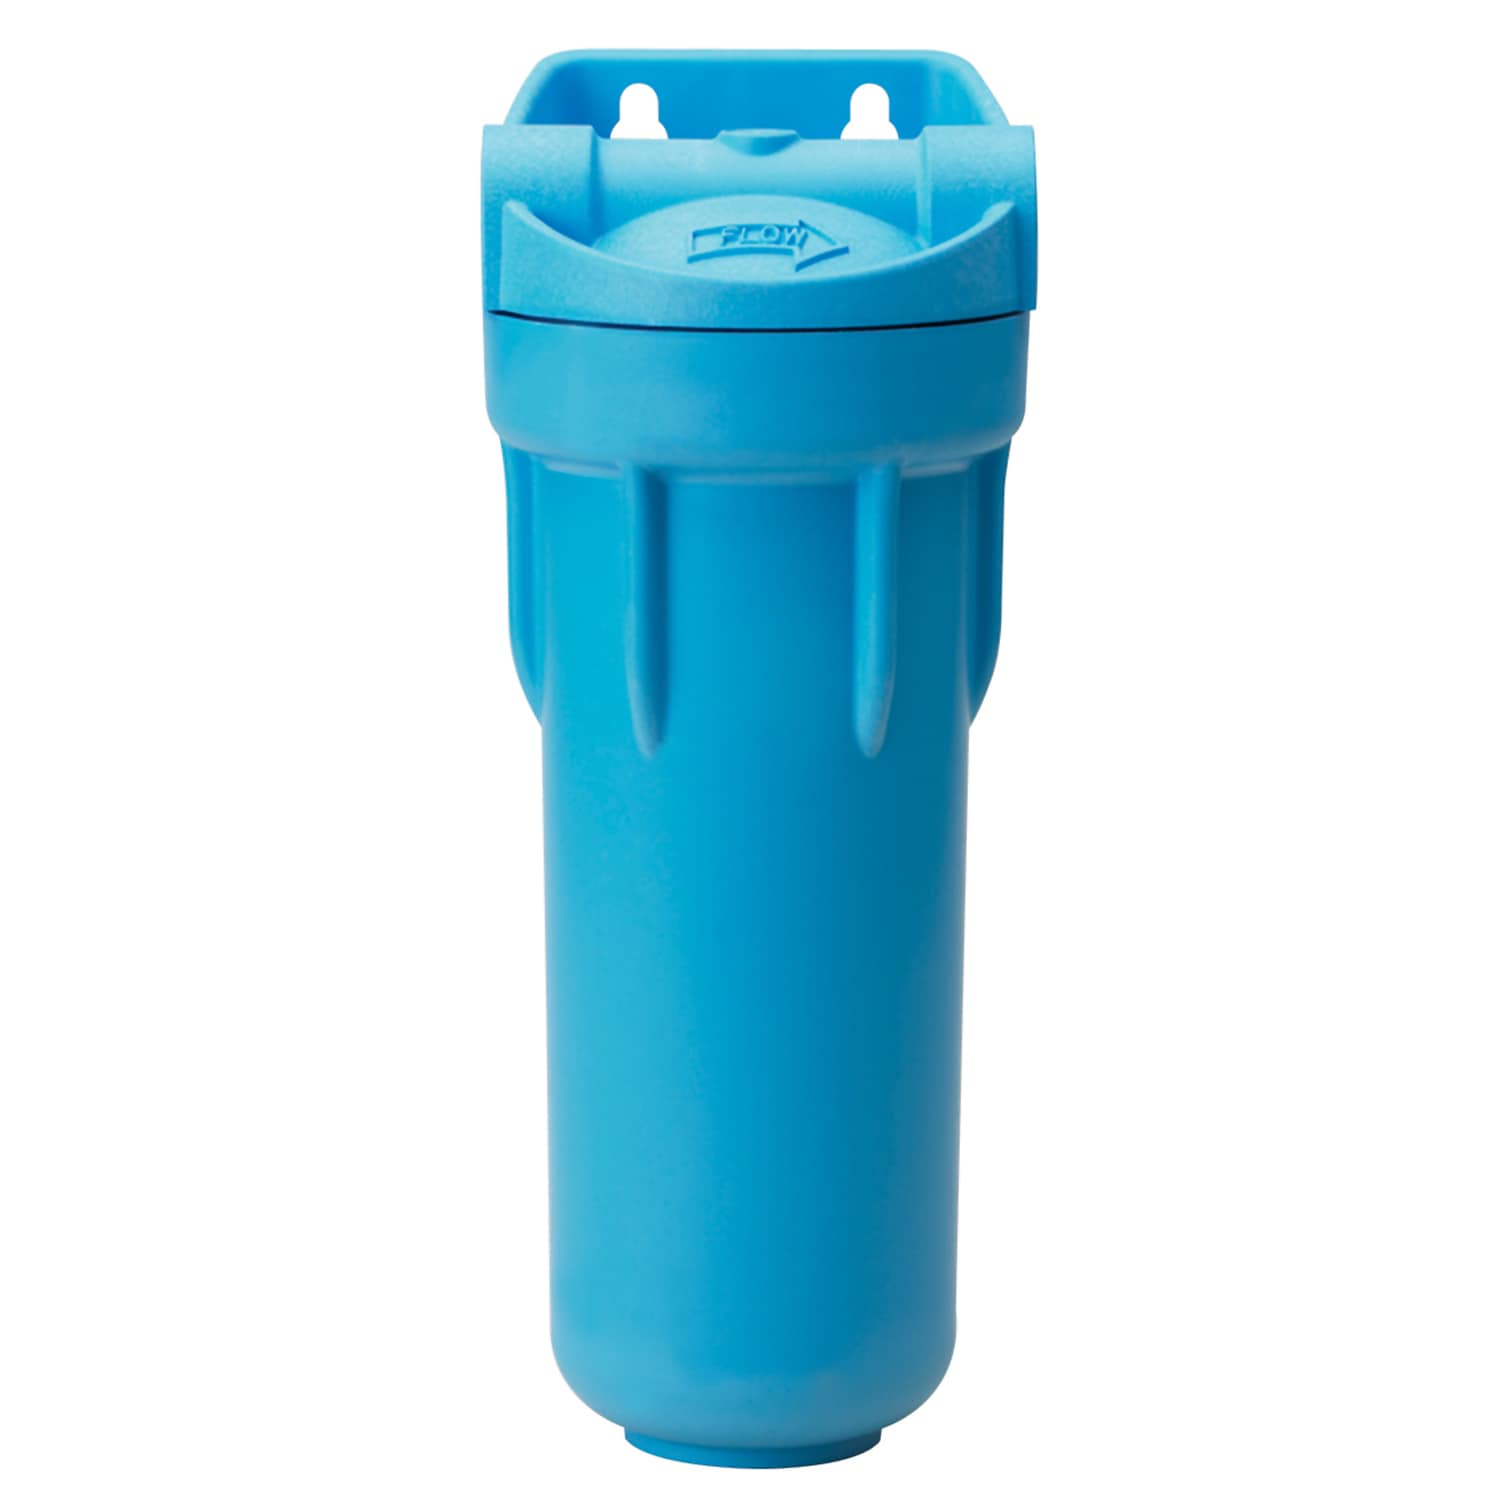 Flotec Ob1 S S06 Standard Whole House Water Filter